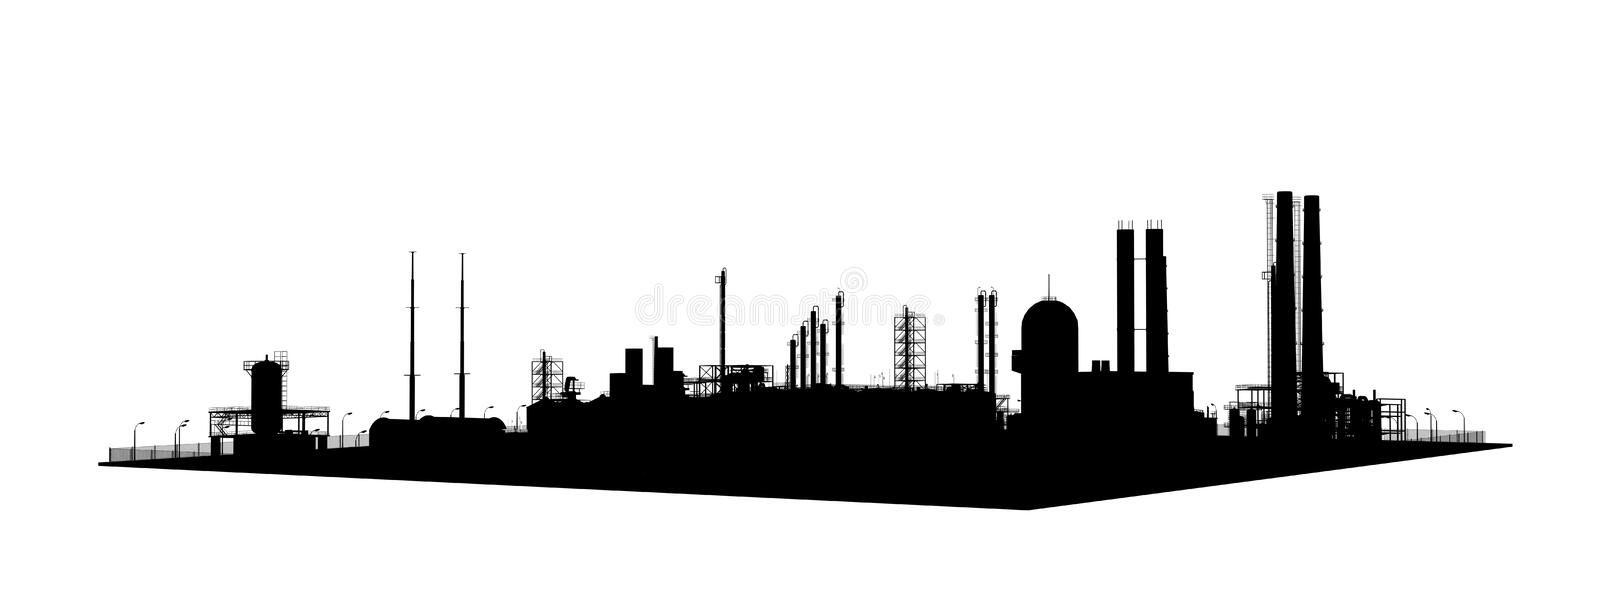 Stencil silhouette factory outside royalty free illustration